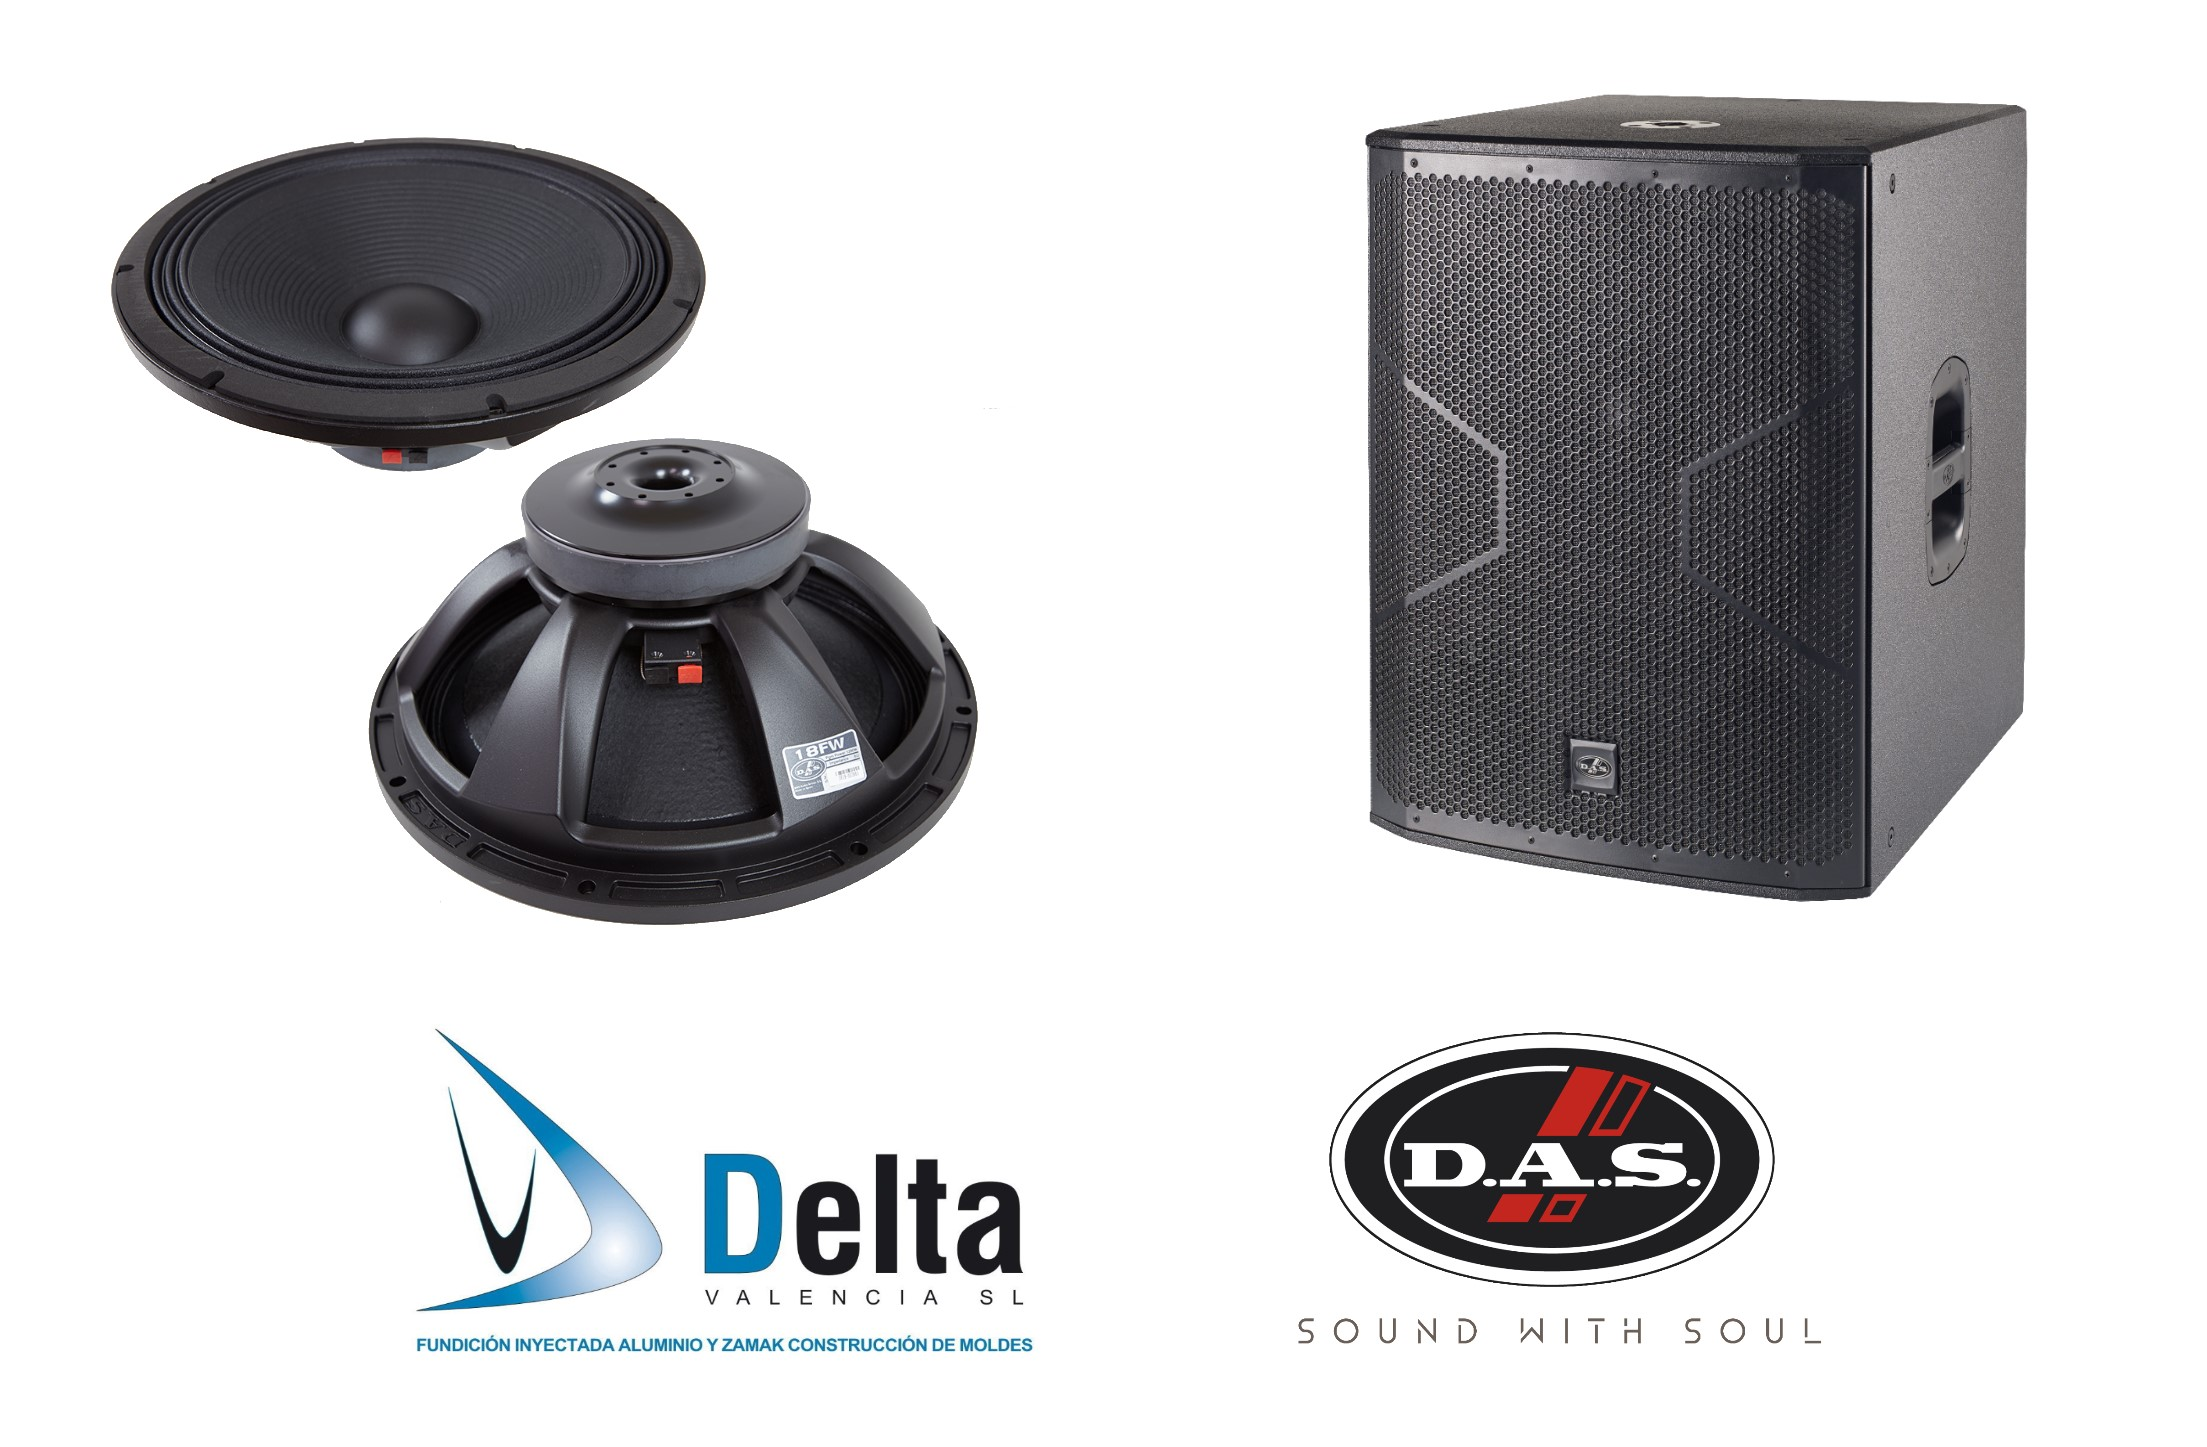 Altavoz D.A.S. Audio